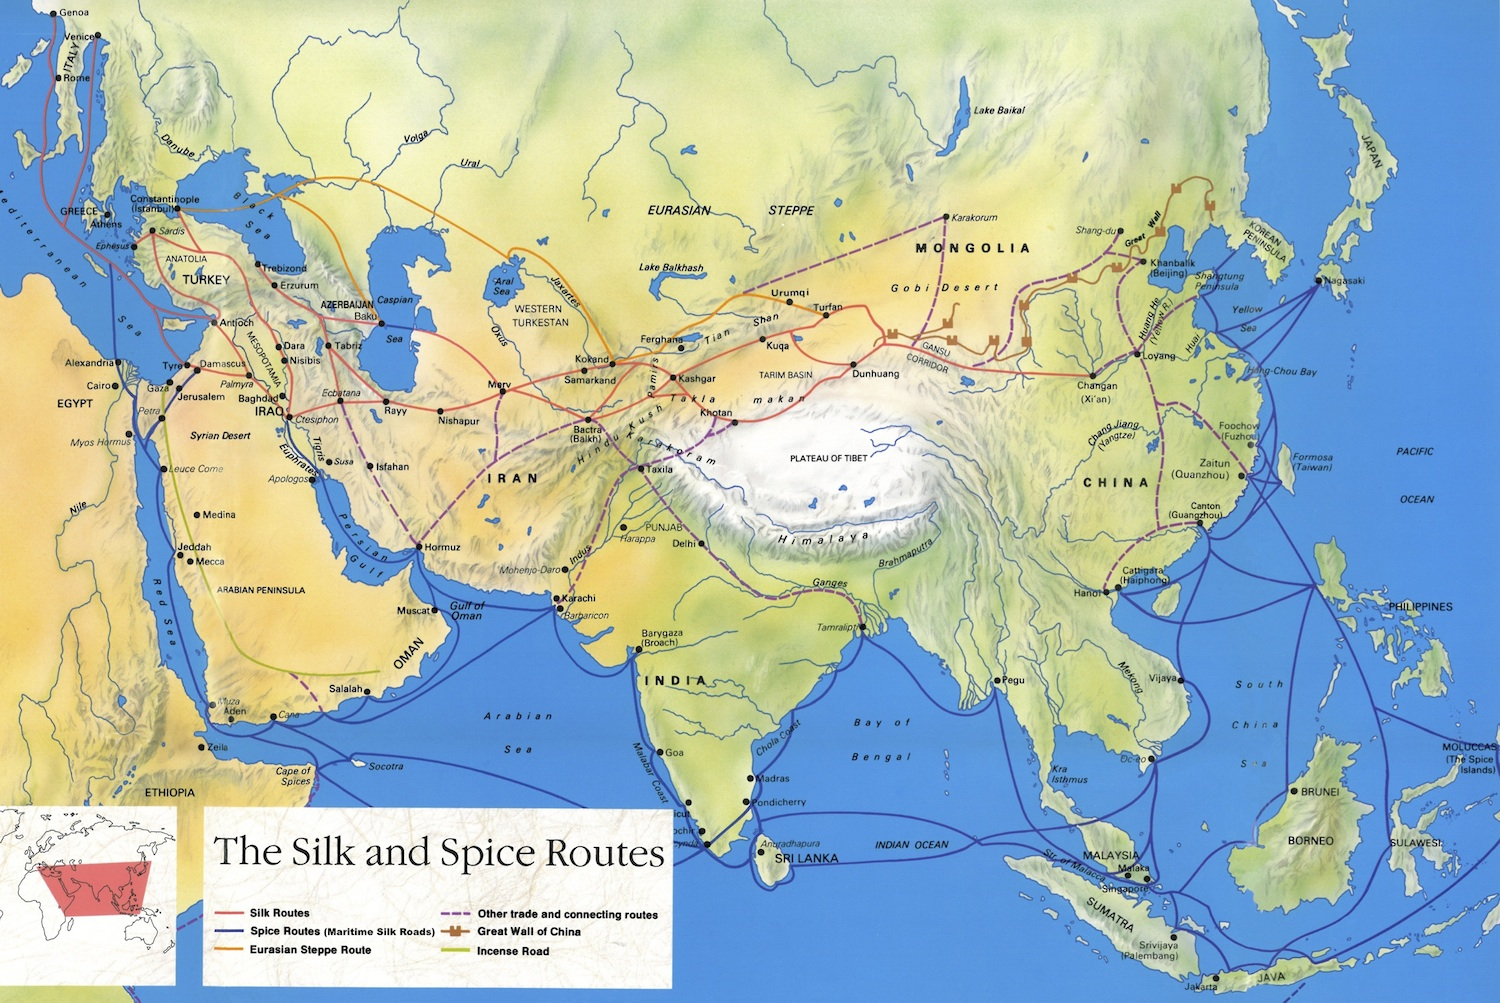 an analysis of the trans asian trade routes in the medieval era European trade routes  use best-teaching practices to discuss the practices and implications of the trans-atlantic slave trade  for this medieval era.